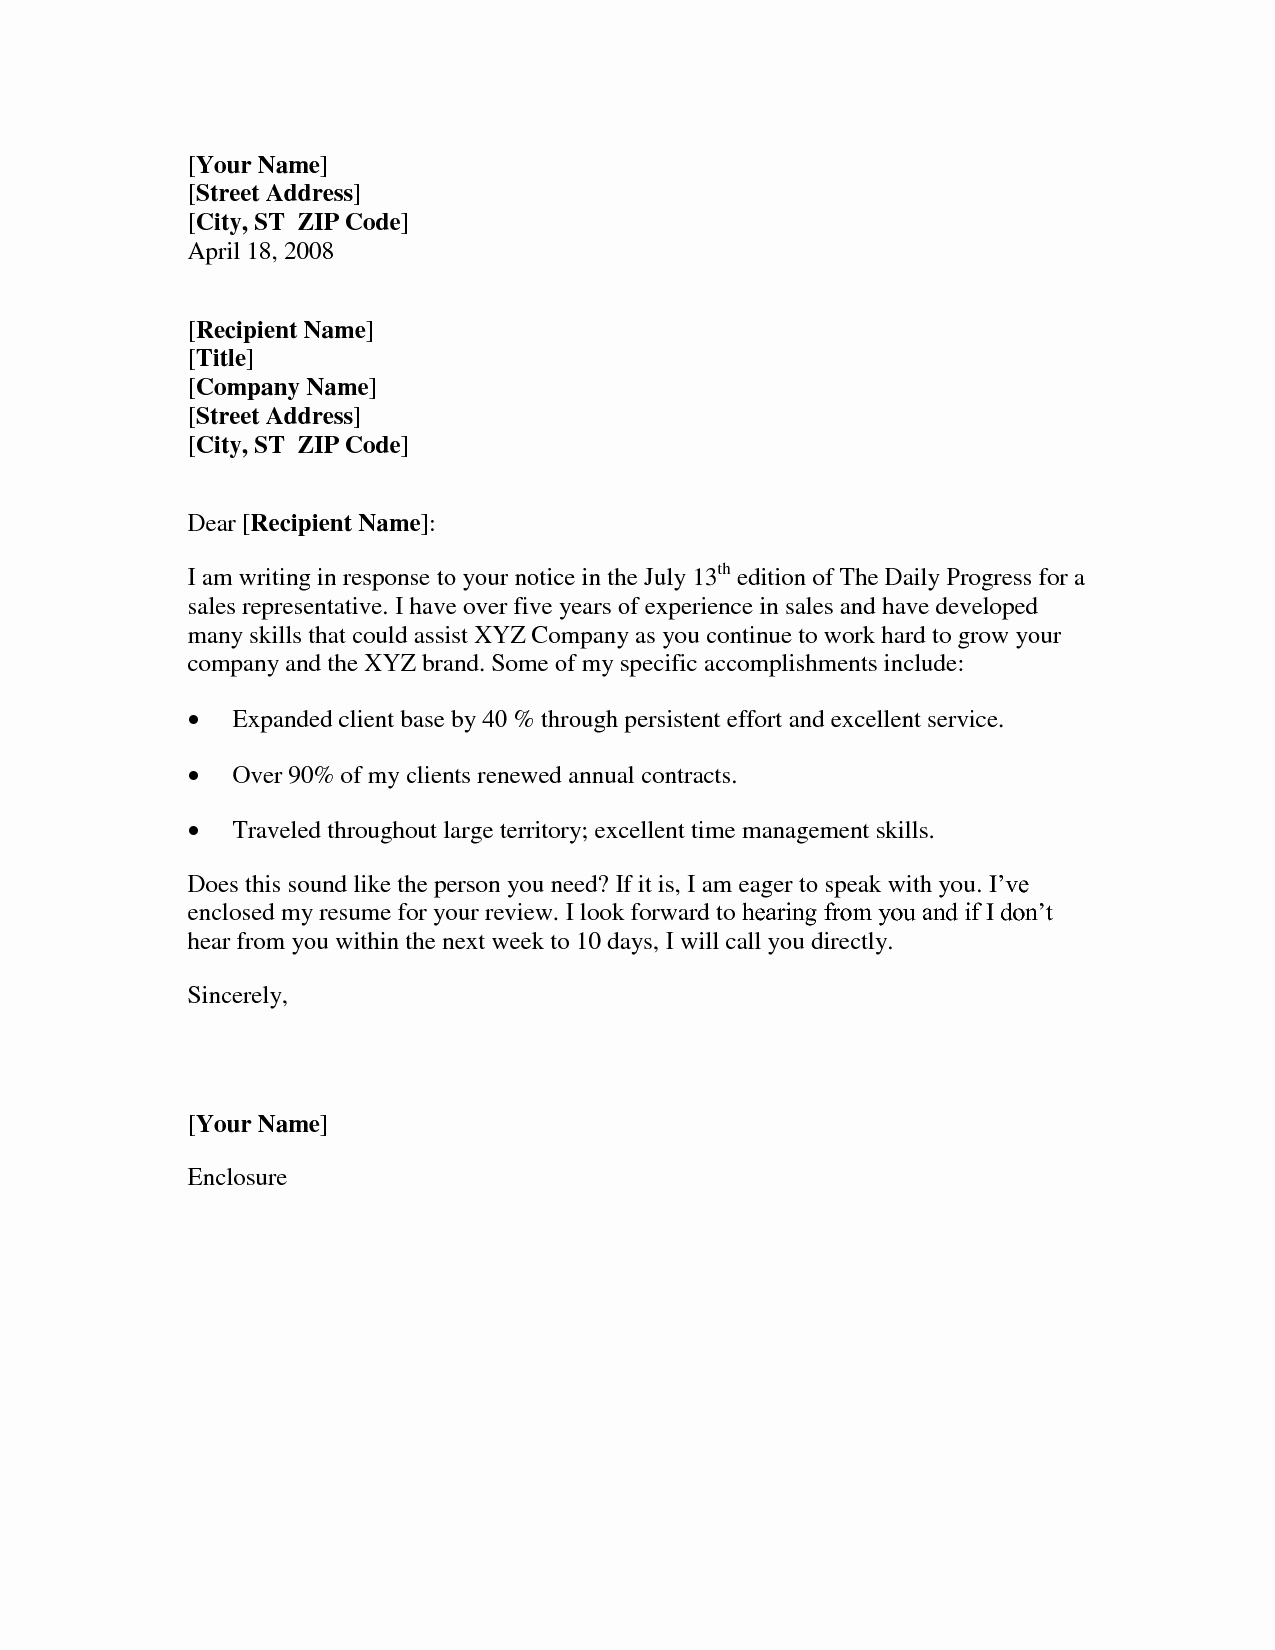 Resume and Cover Letter formats Luxury 10 Best Of Basic Cover Letter for Resume Sample